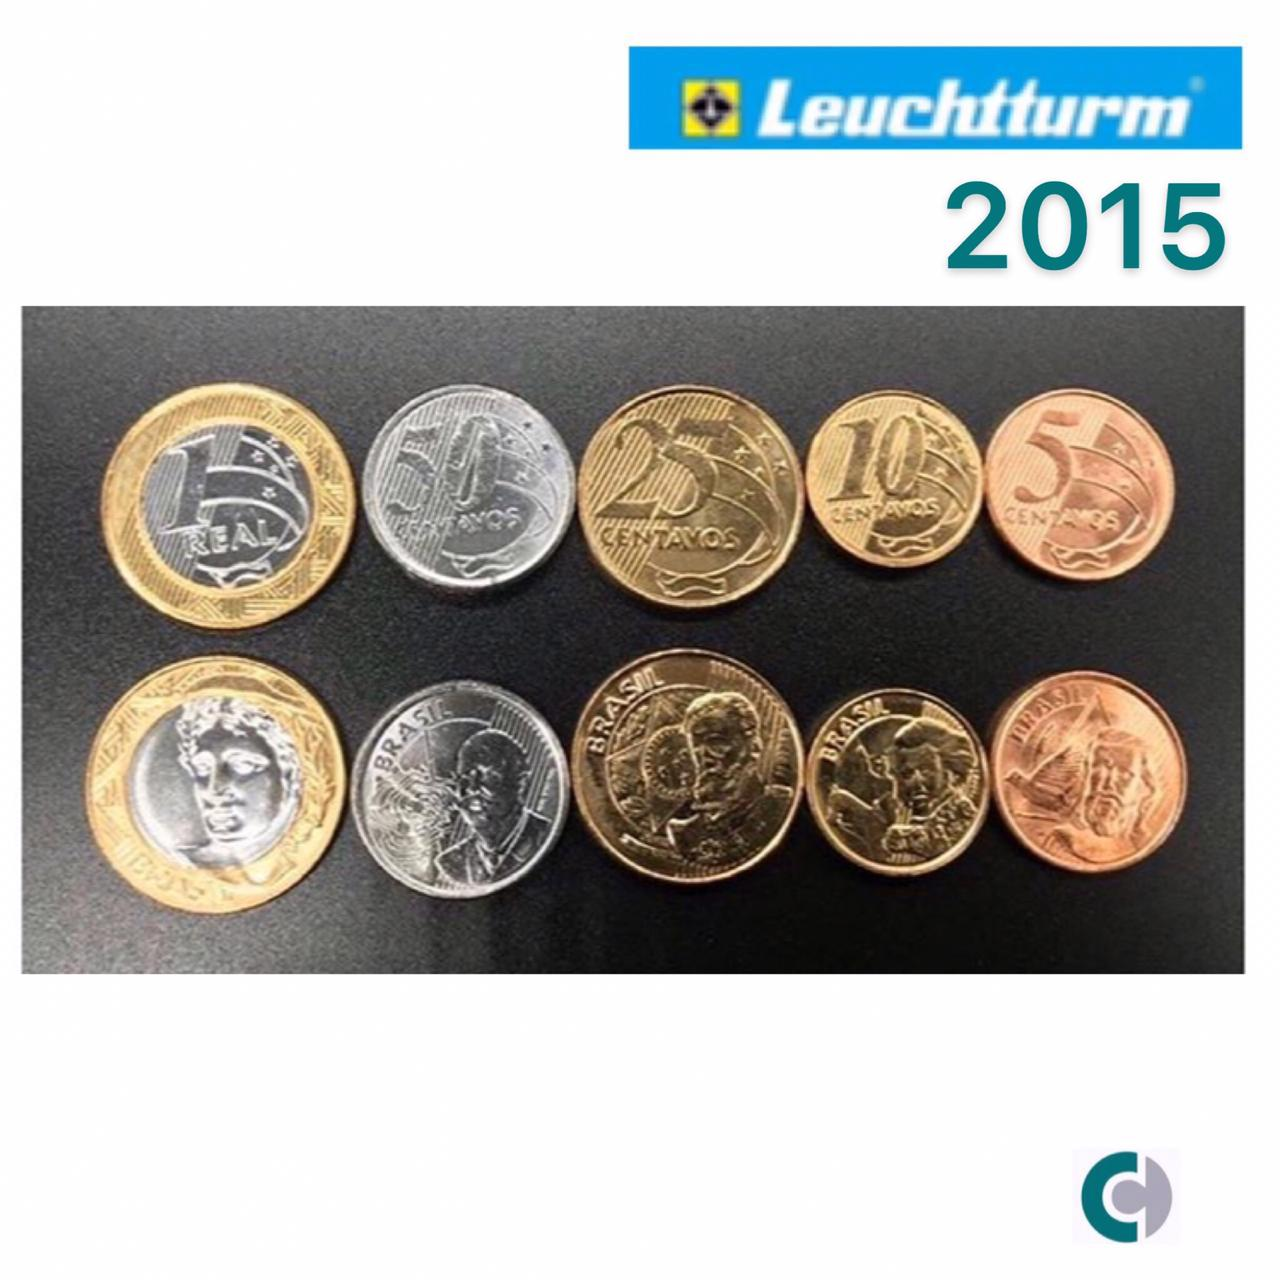 Set de Moedas do Real 2015 (FC) em coin holder Leuchtturm